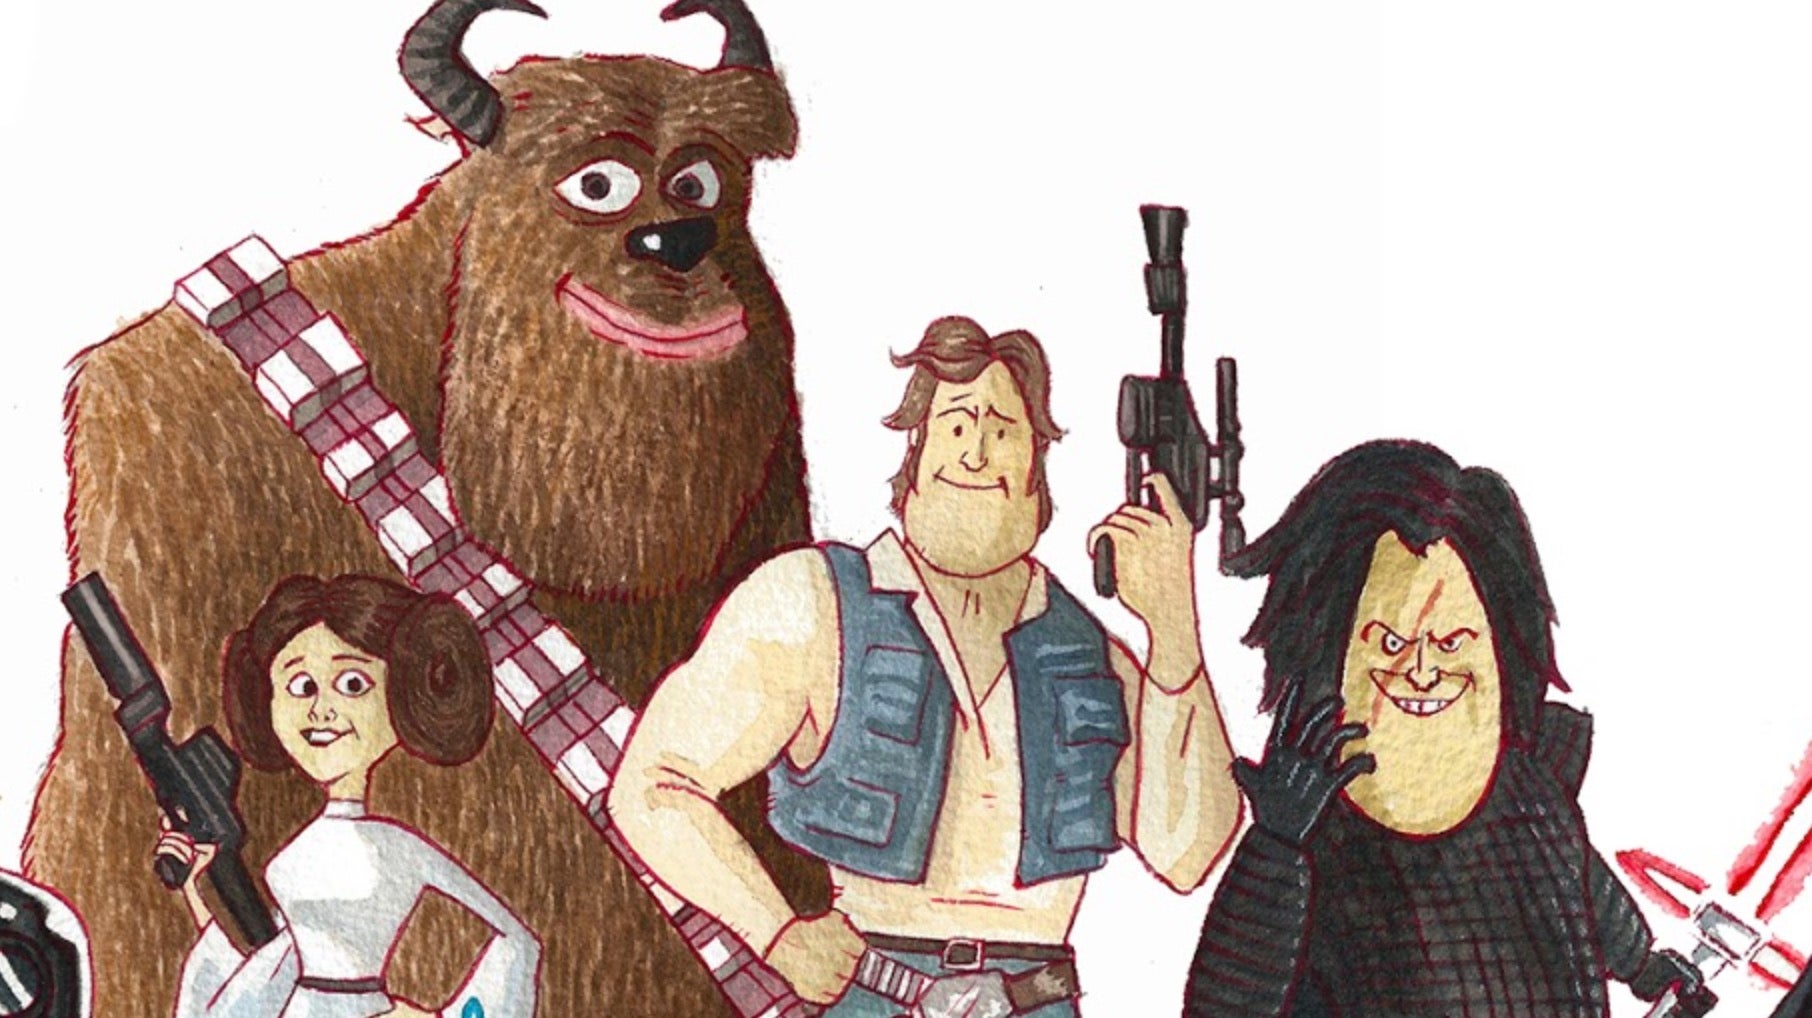 This Pixar And Star Wars Mash-Up Is Almost Too Perfect